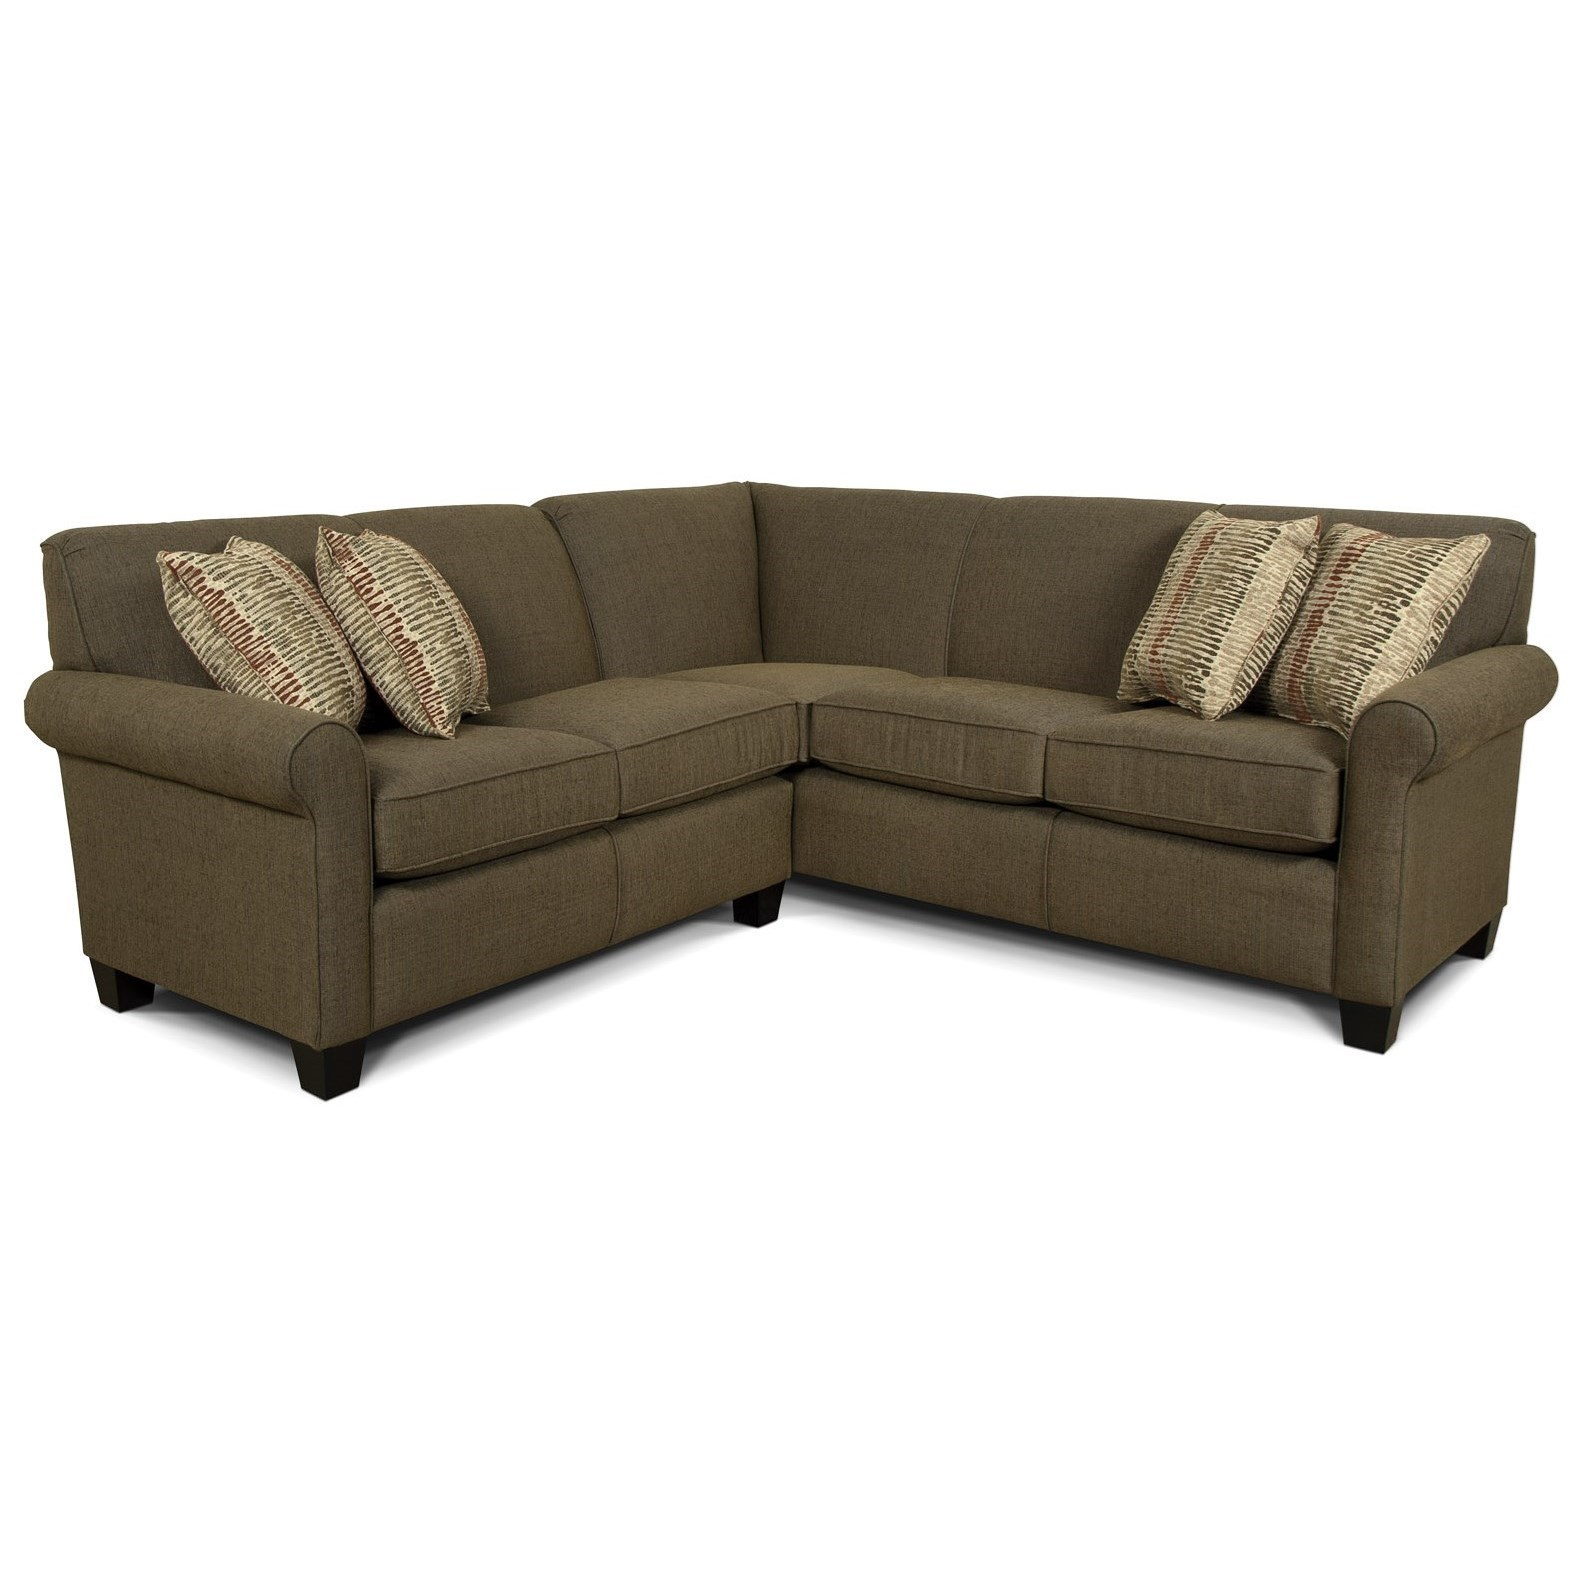 England Angie Small Corner Sectional Sofa   Gill Brothers Furniture   Sectional  Sofas